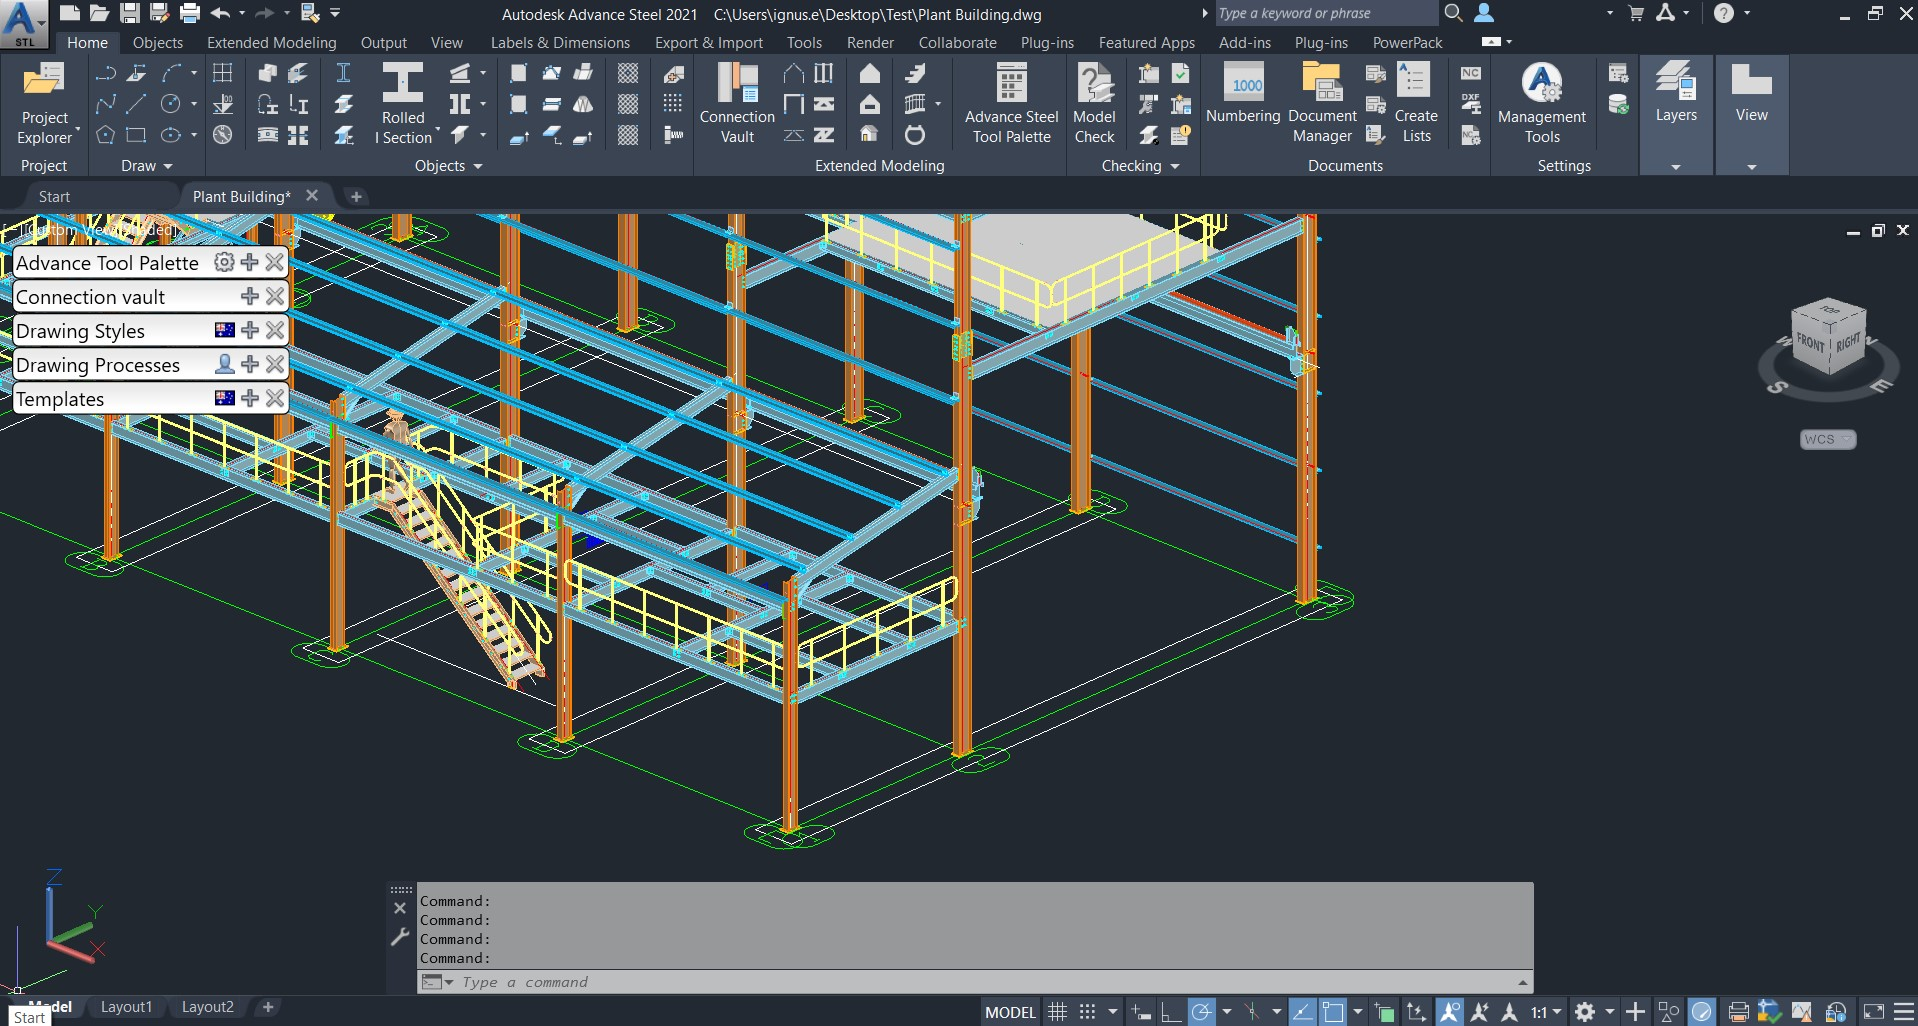 Advance Steel – Using Autodesk Docs to Compare Model and Shop Drawing Versions